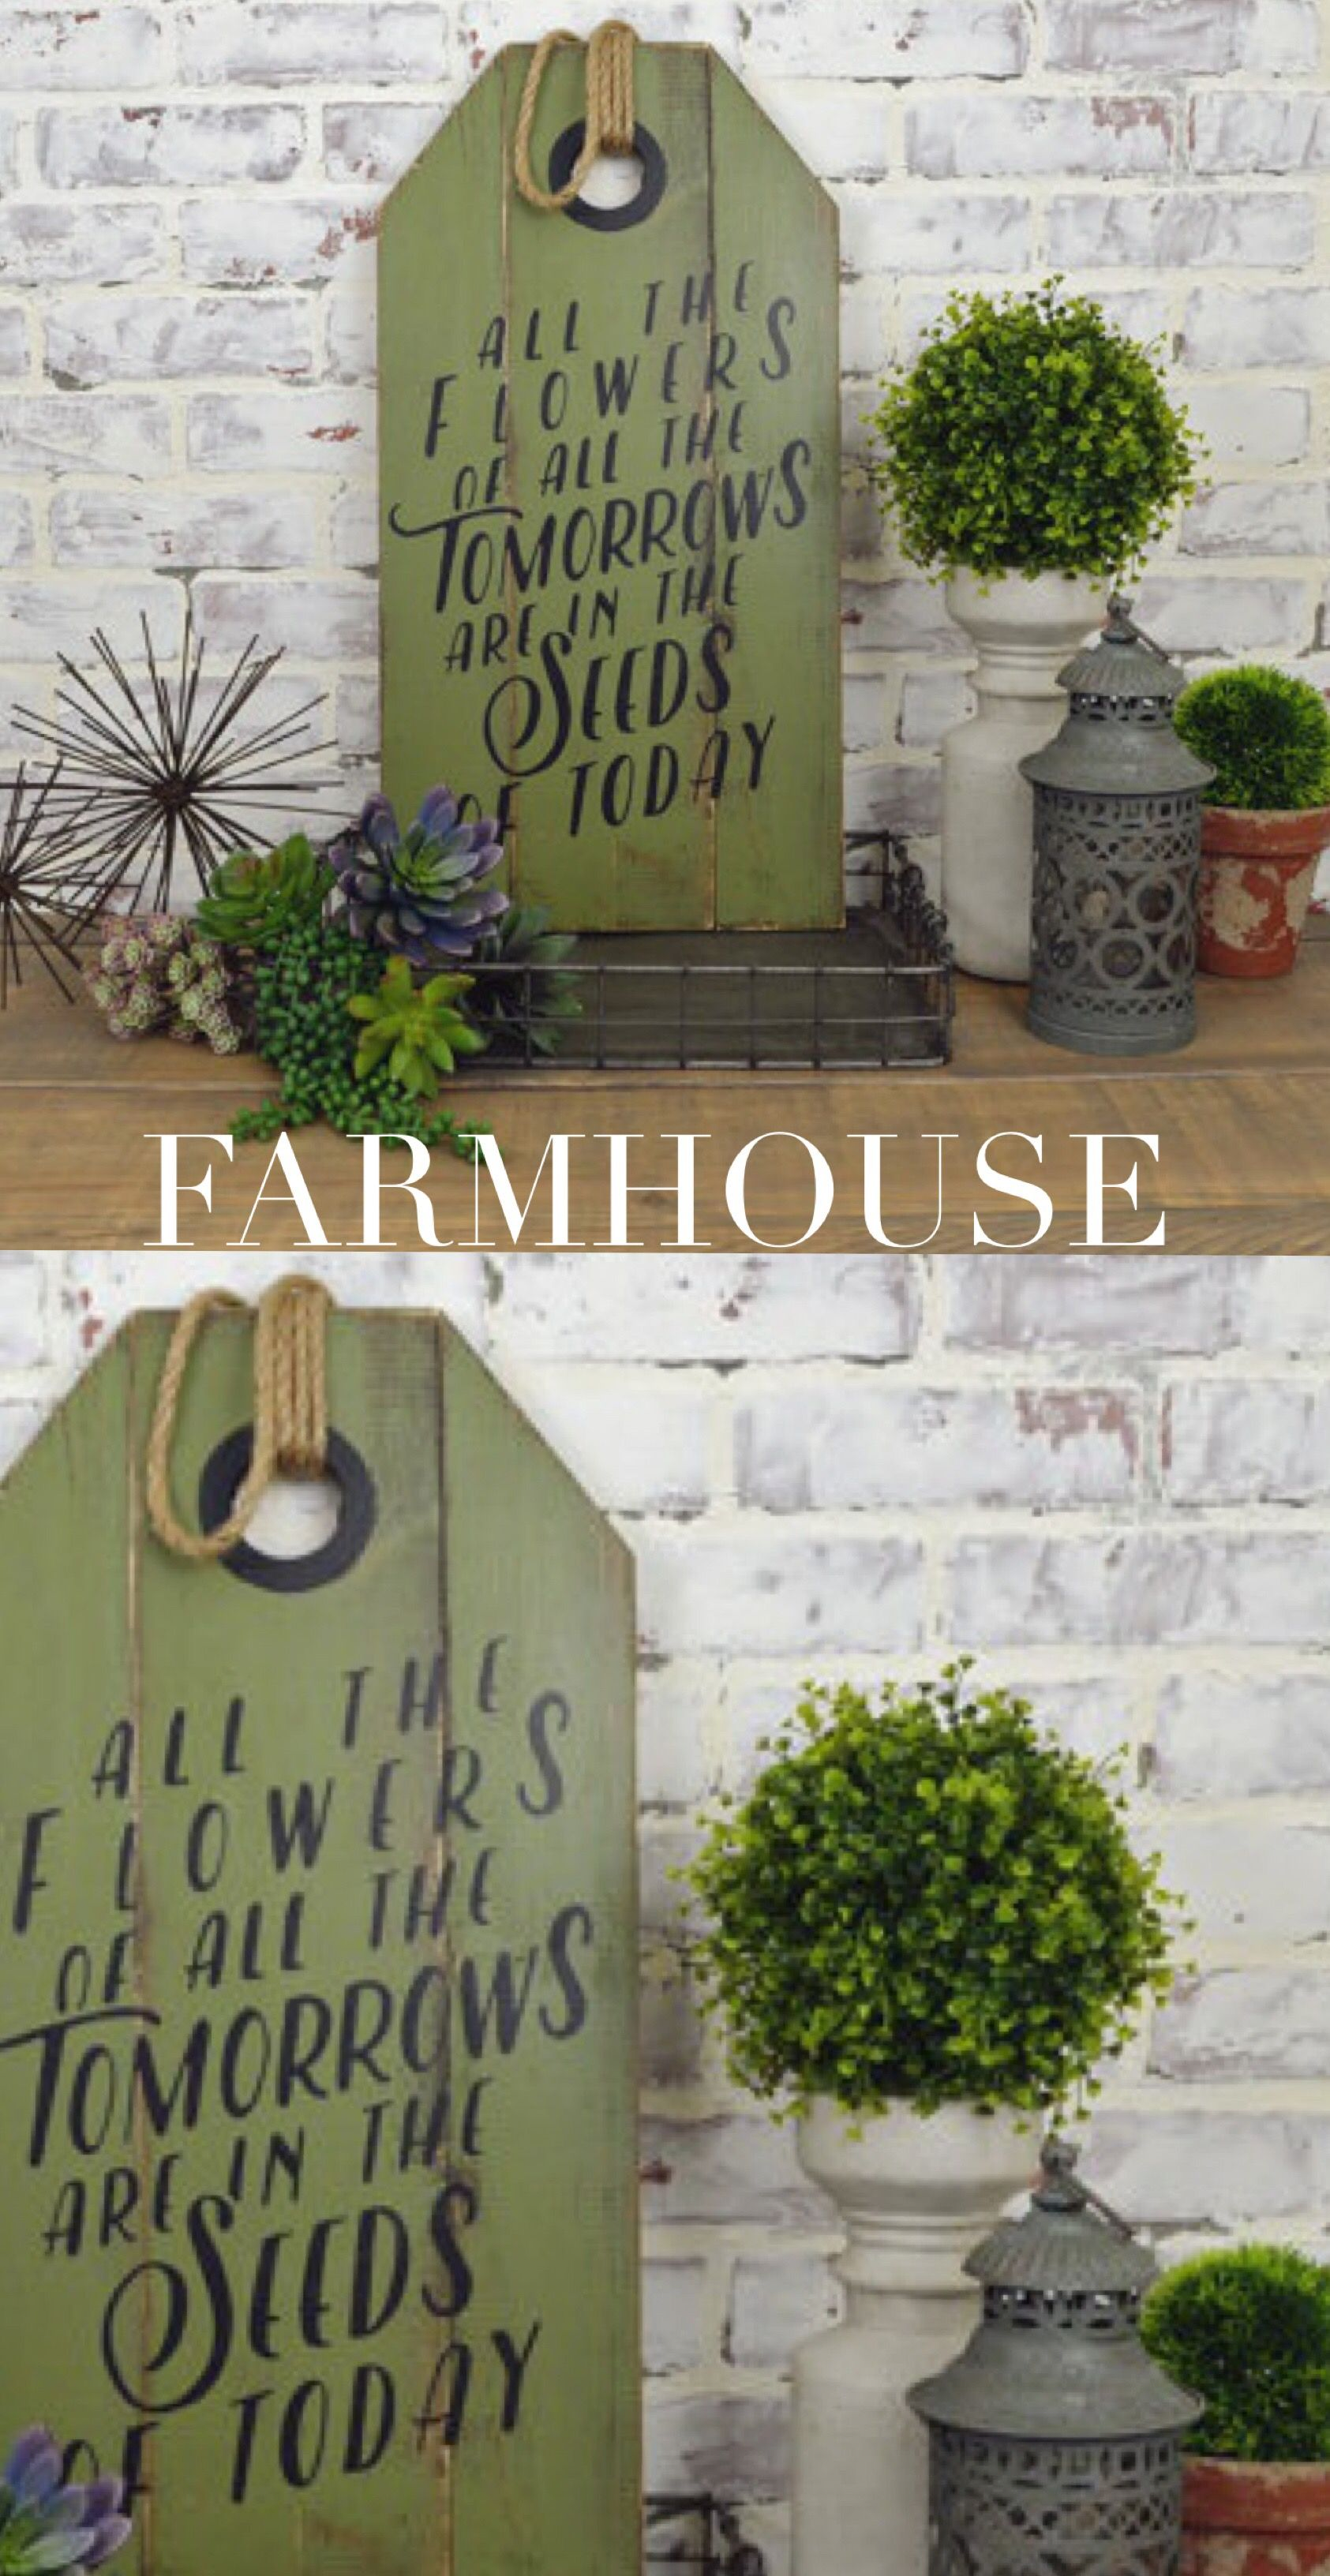 Farmhouse Table Modern Decor Spring Sign Wooden Tags Rustic Signs Wood Build Stuff Alphabet Soup